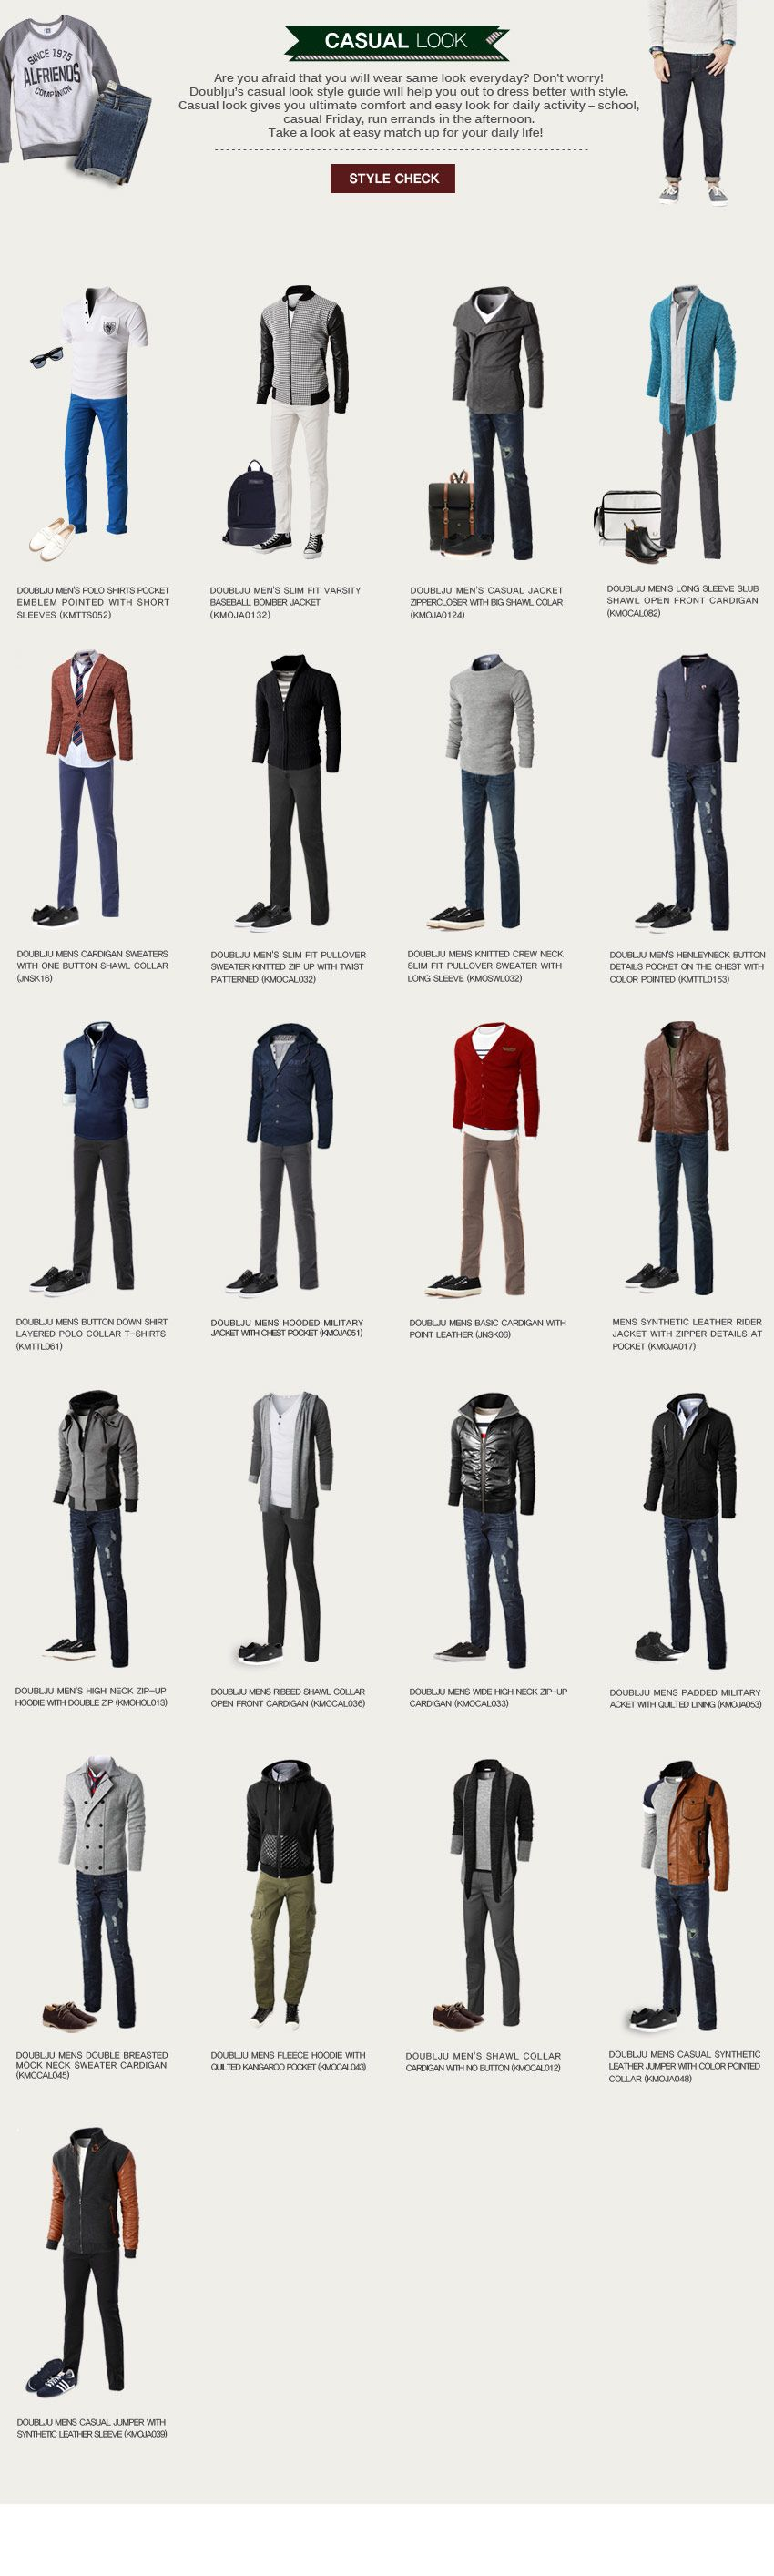 20 casual outfit ideas for men infographic infographic